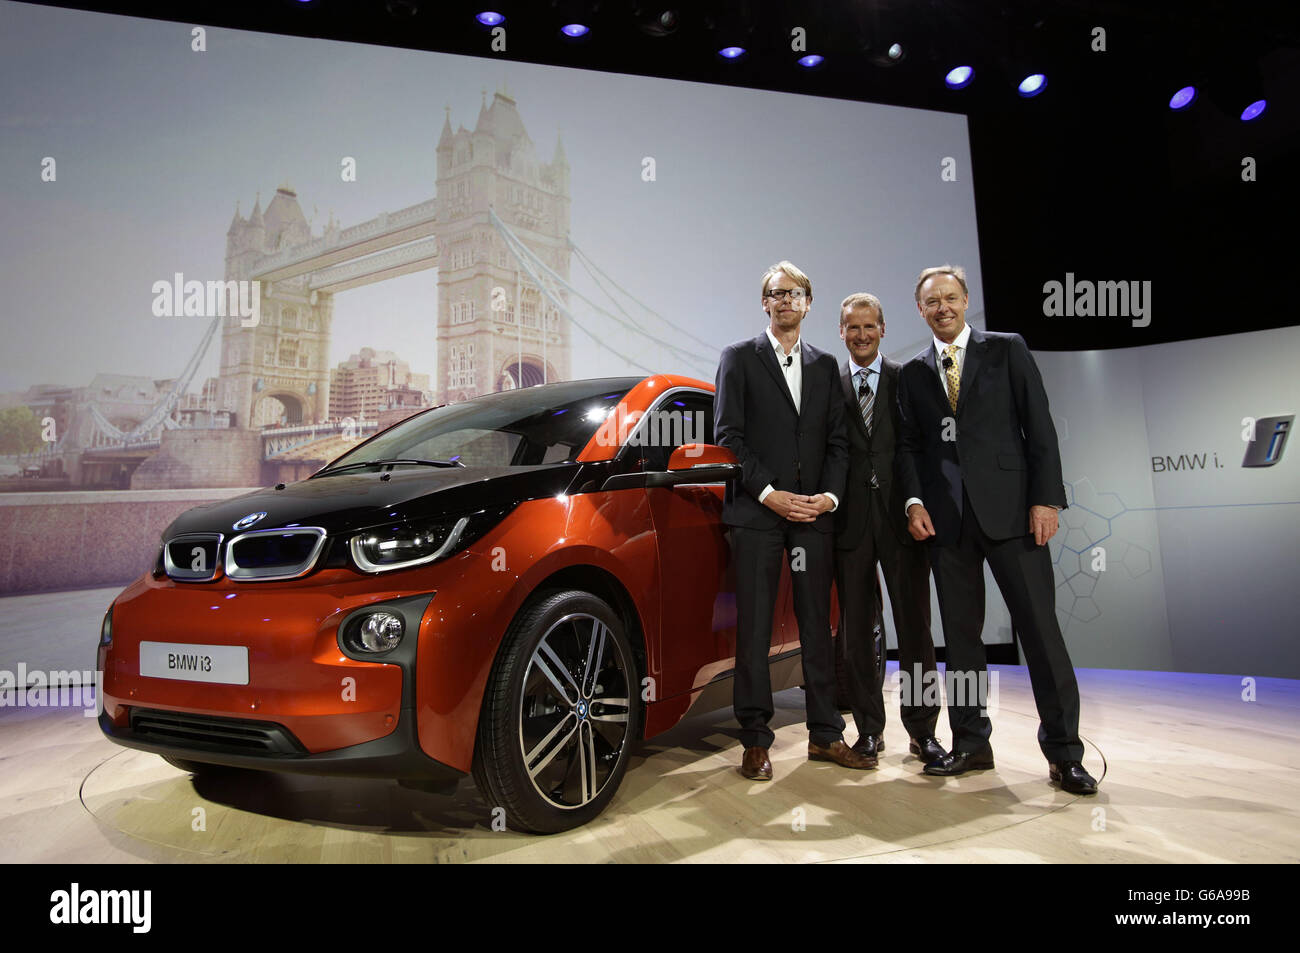 Bmw Electric Car Launch Stock Photo 107176983 Alamy